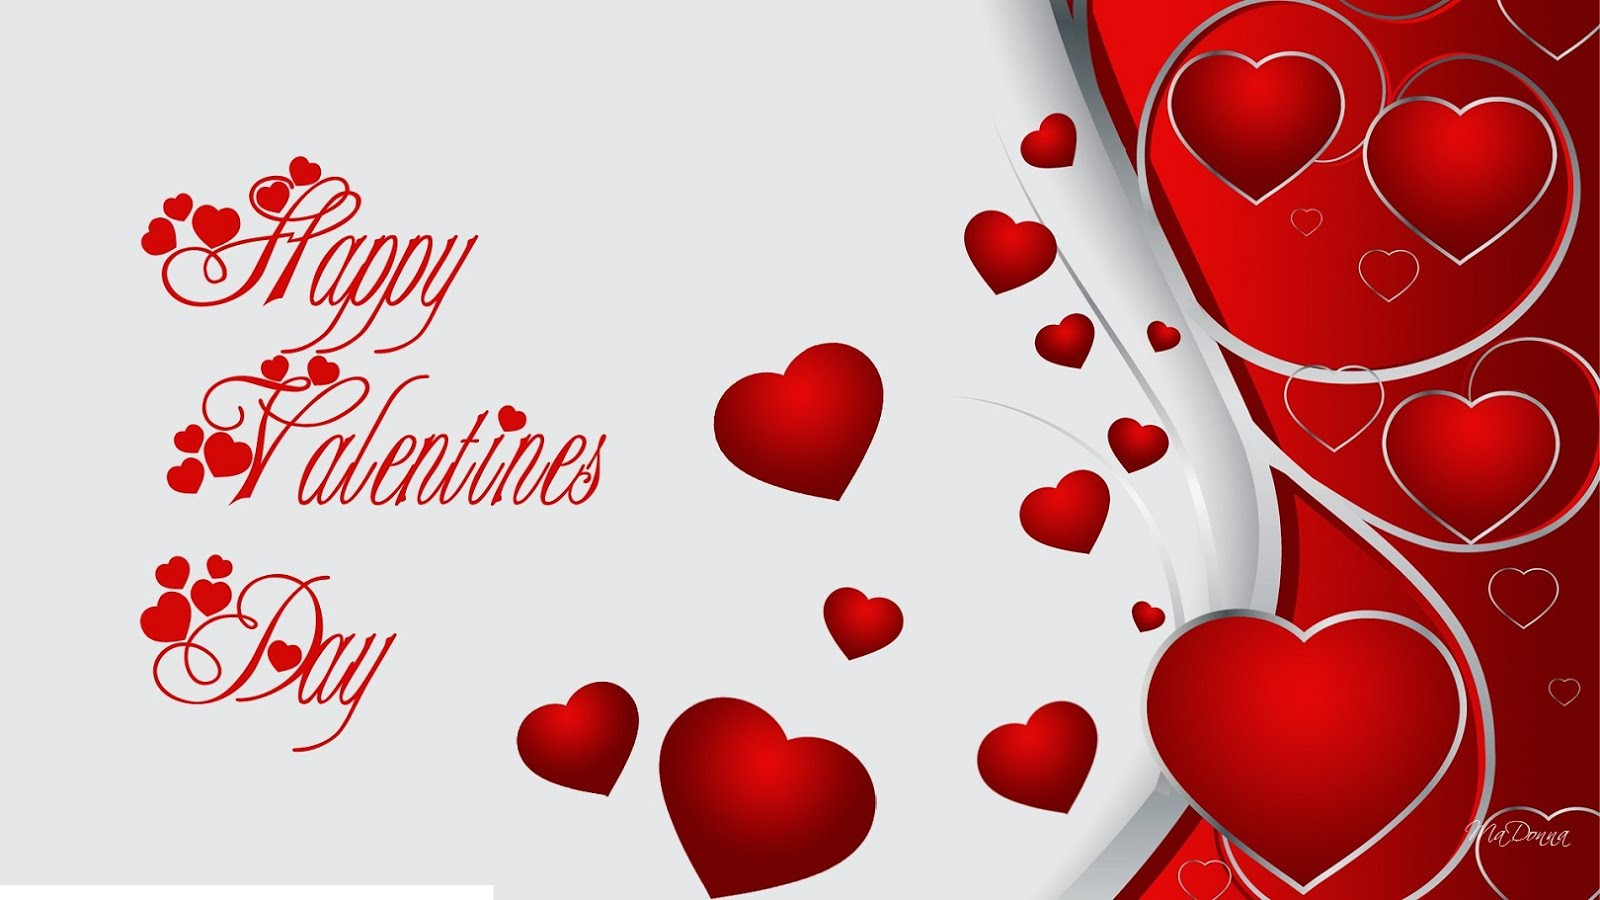 Valentines Day Images 2017 Free Download